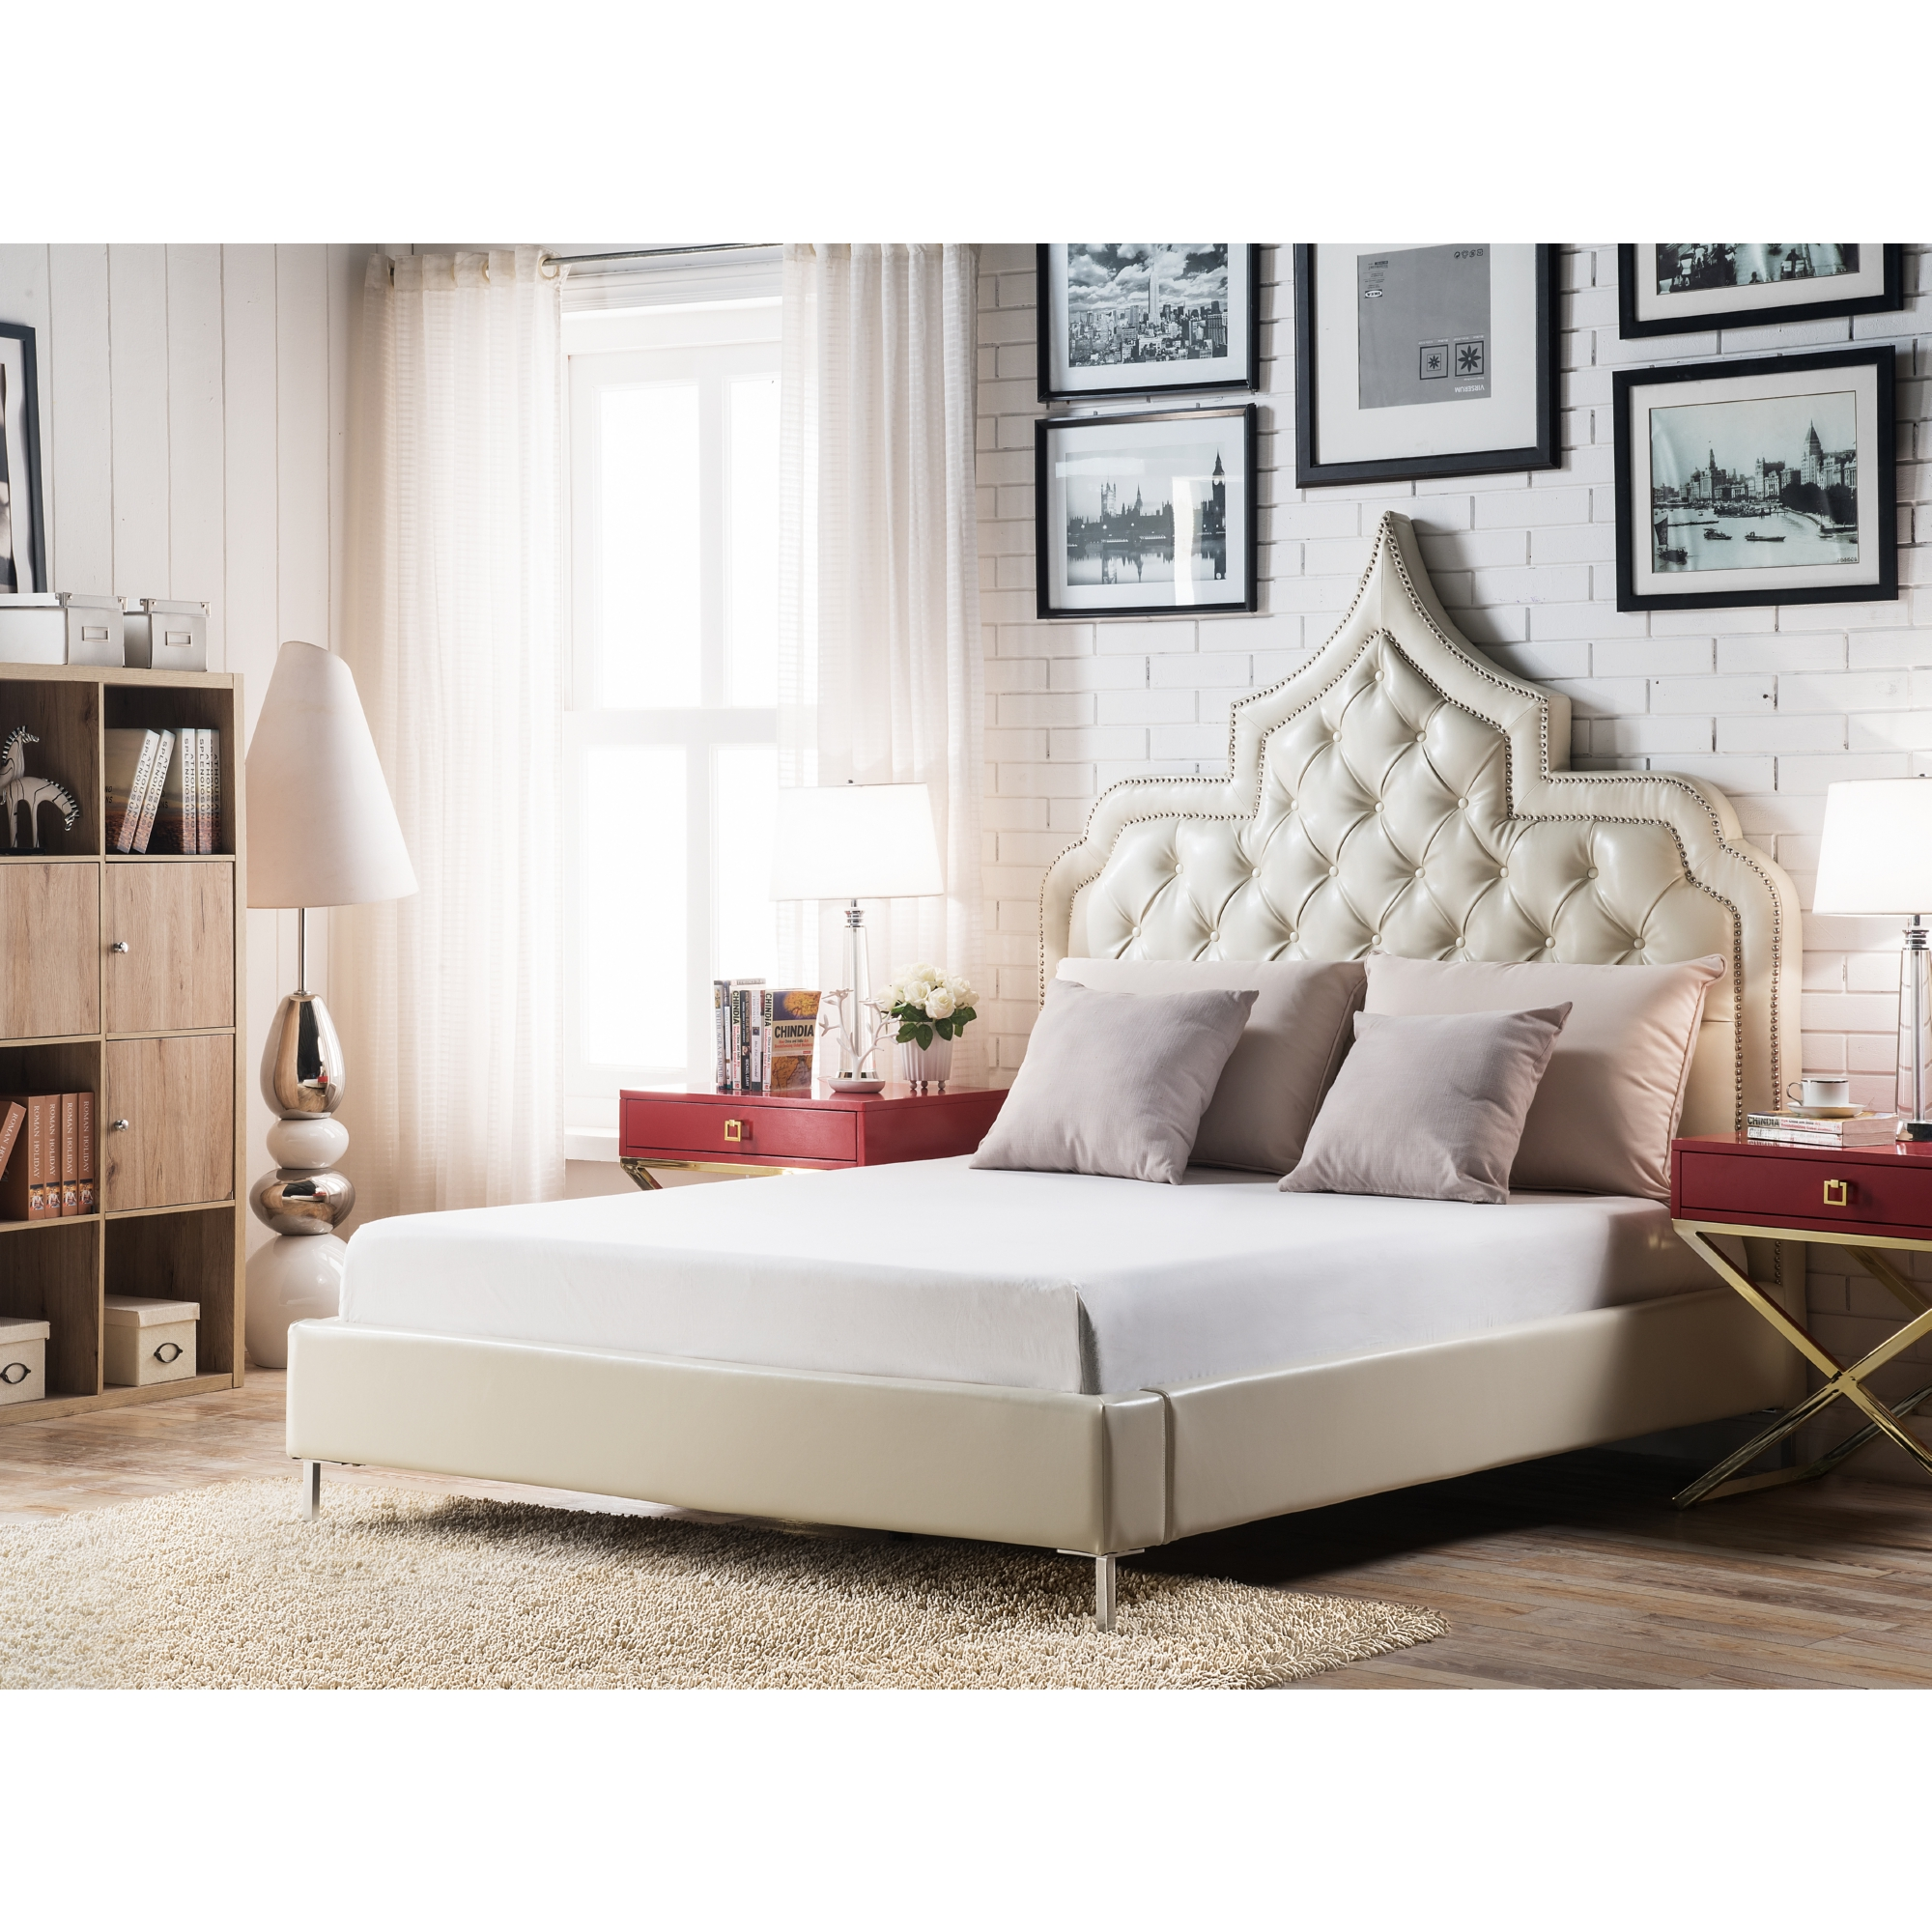 Victorian Peak King Bed In Cream White Tufted Leatherette W